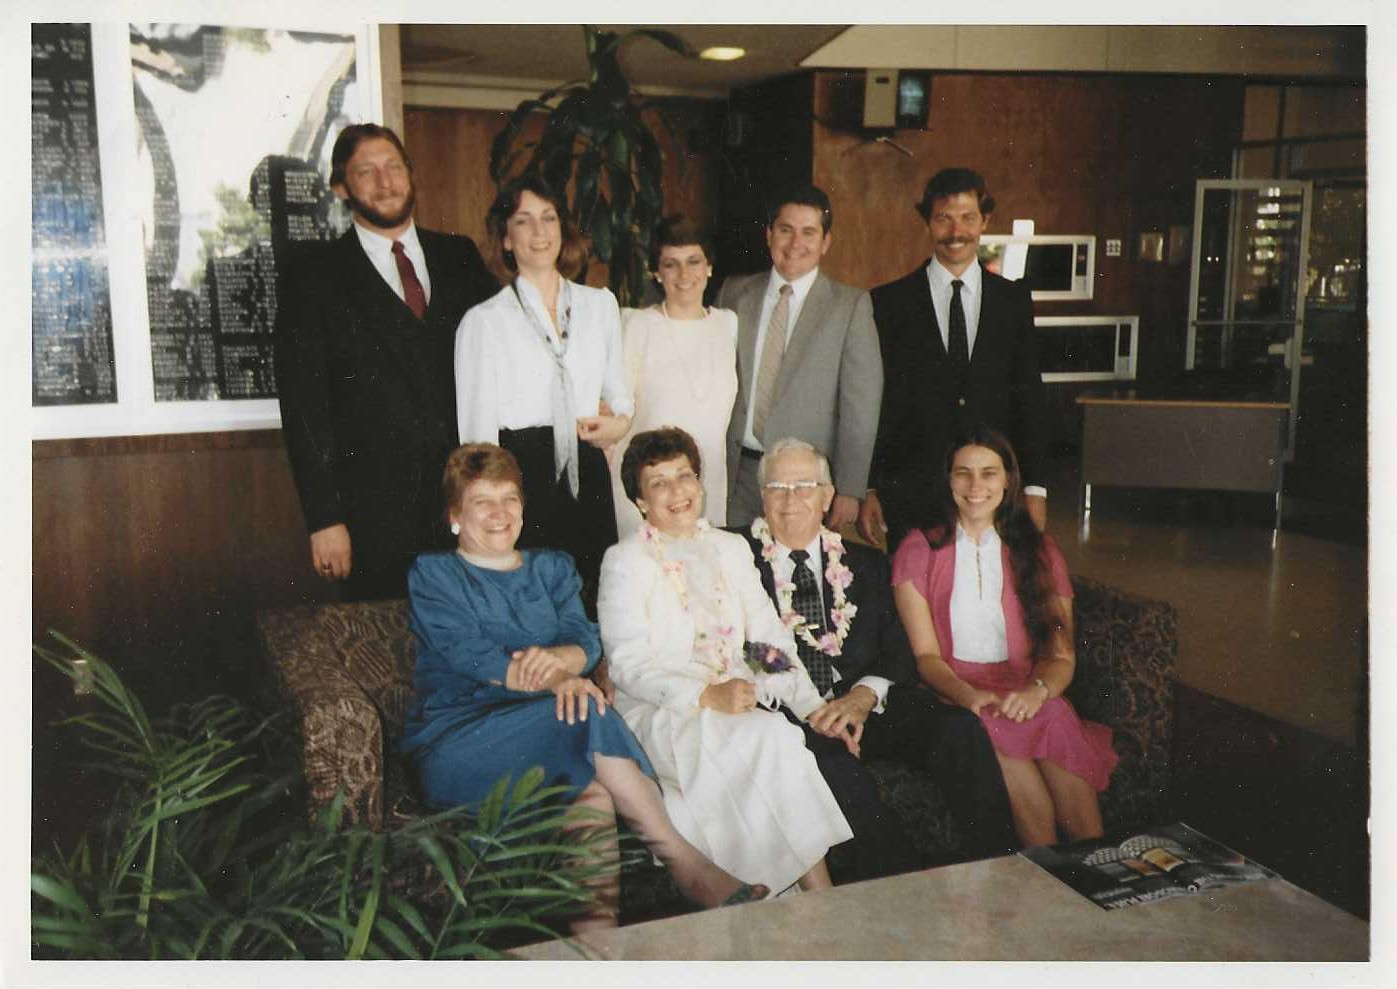 Mary Lou, with newlyweds sister Lois and Clare Hamman, and Ramsey girls and their husbands.  10/26/84